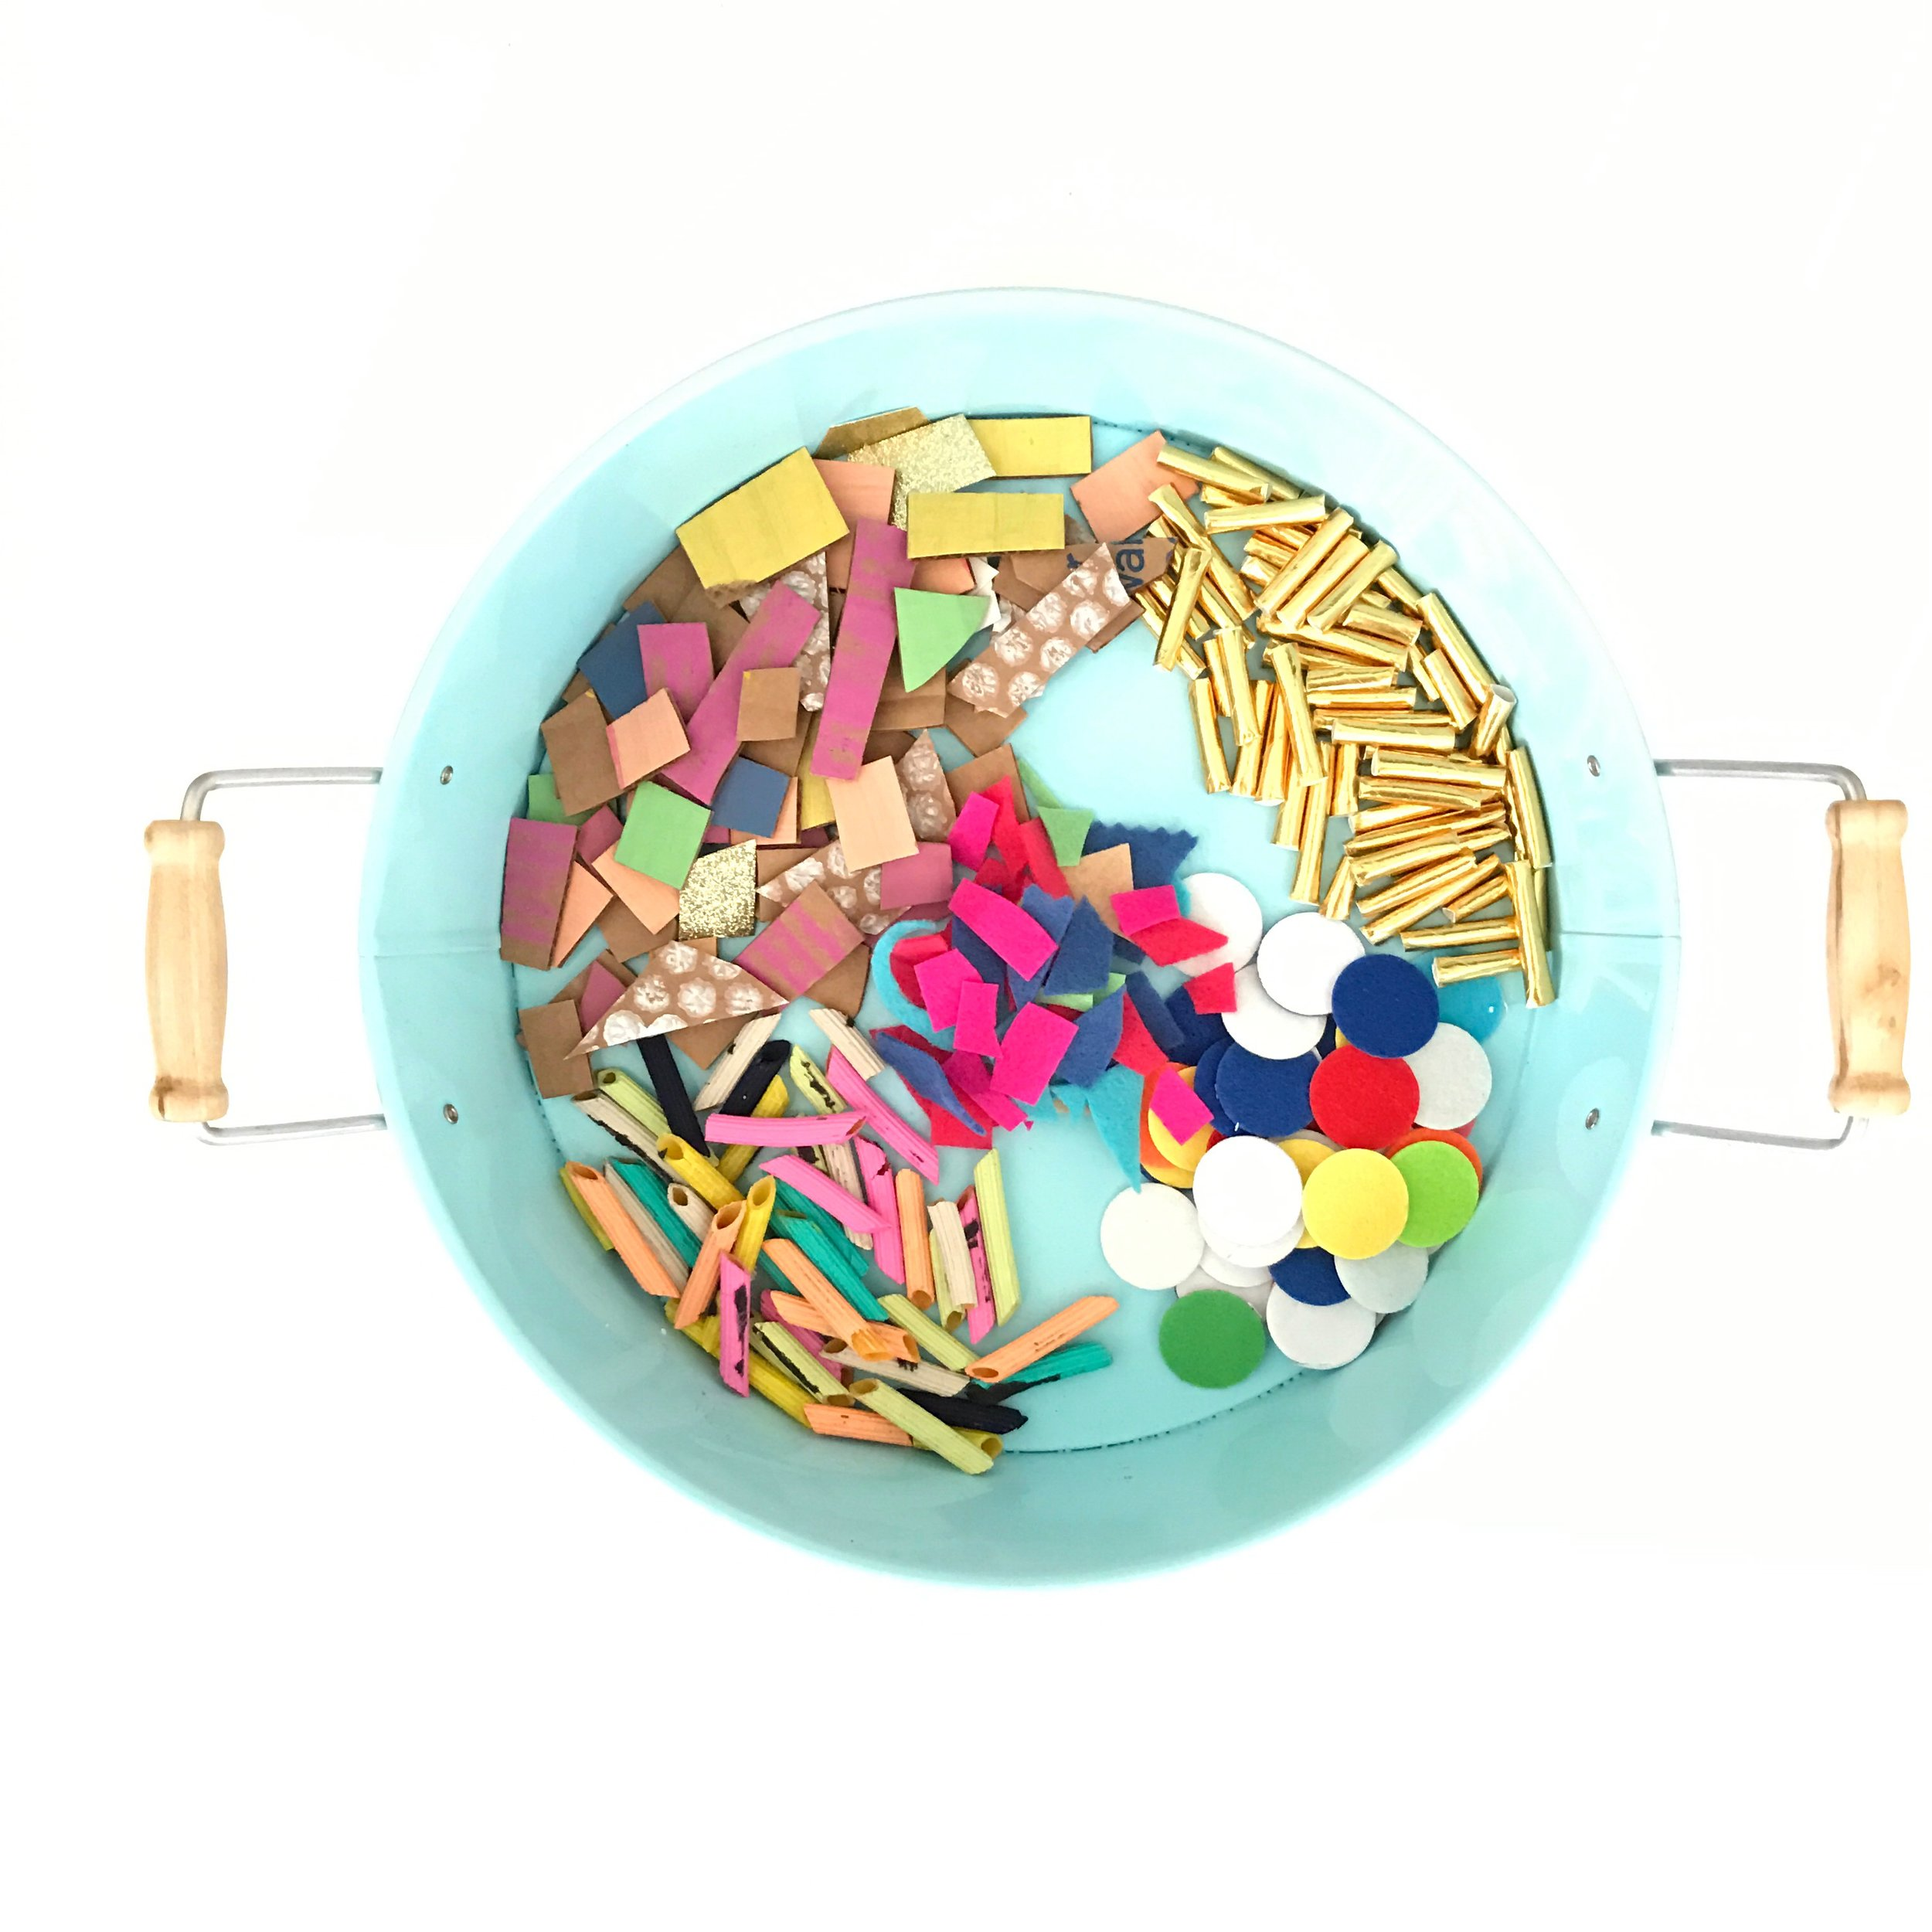 Loose Parts Collage 3